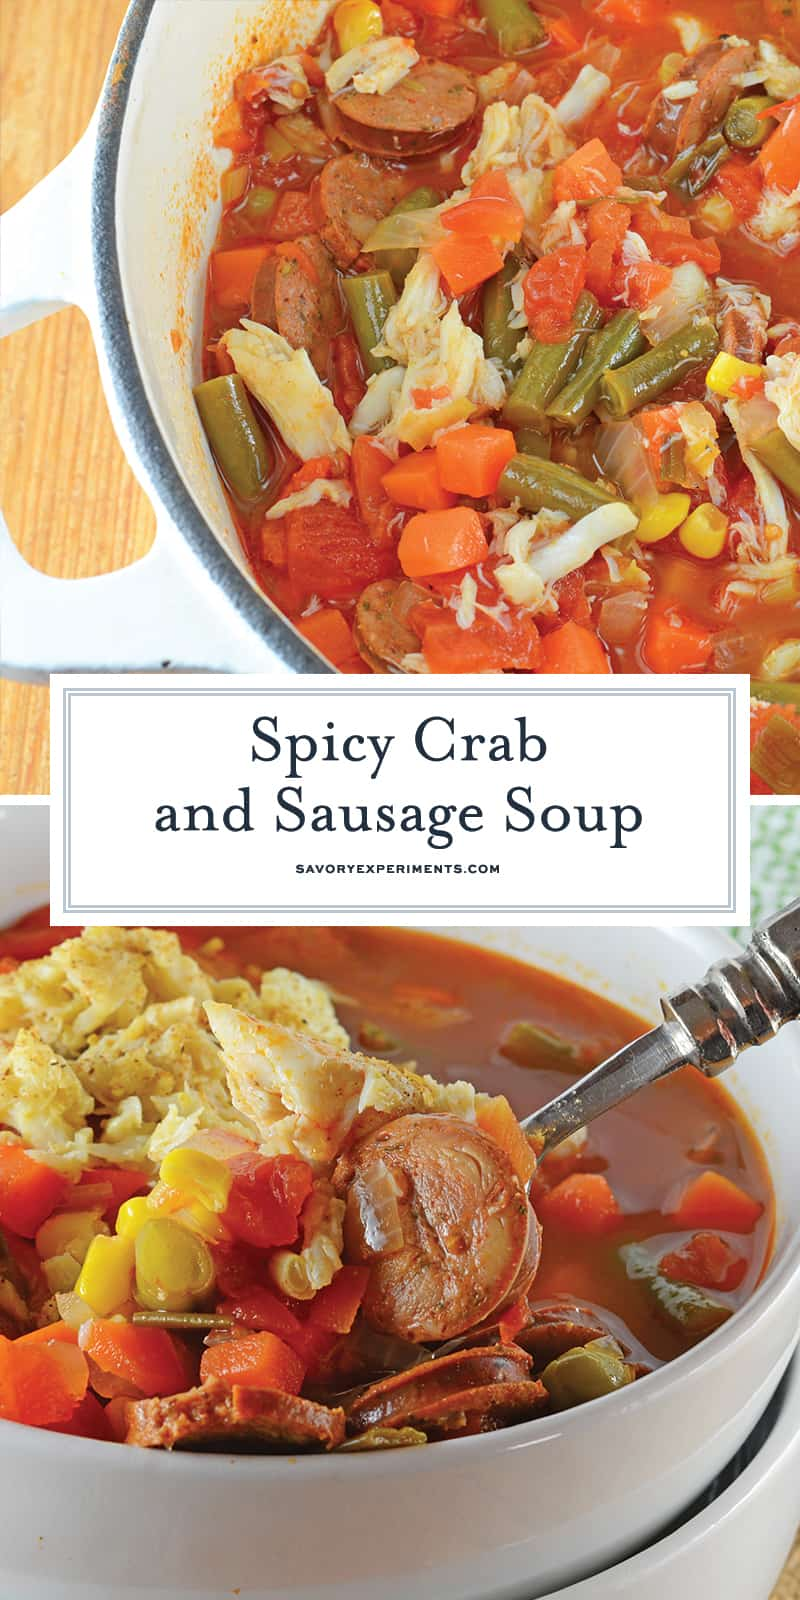 Spicy Crab and Sausage Soup is a quick, easy and flavorful appetizer or dinner recipe! Packed full of vegetables, sausage and crab, you can't go wrong! #crabsoup #sausagesoup #spicysouprecipes www.savoryexperiments.com